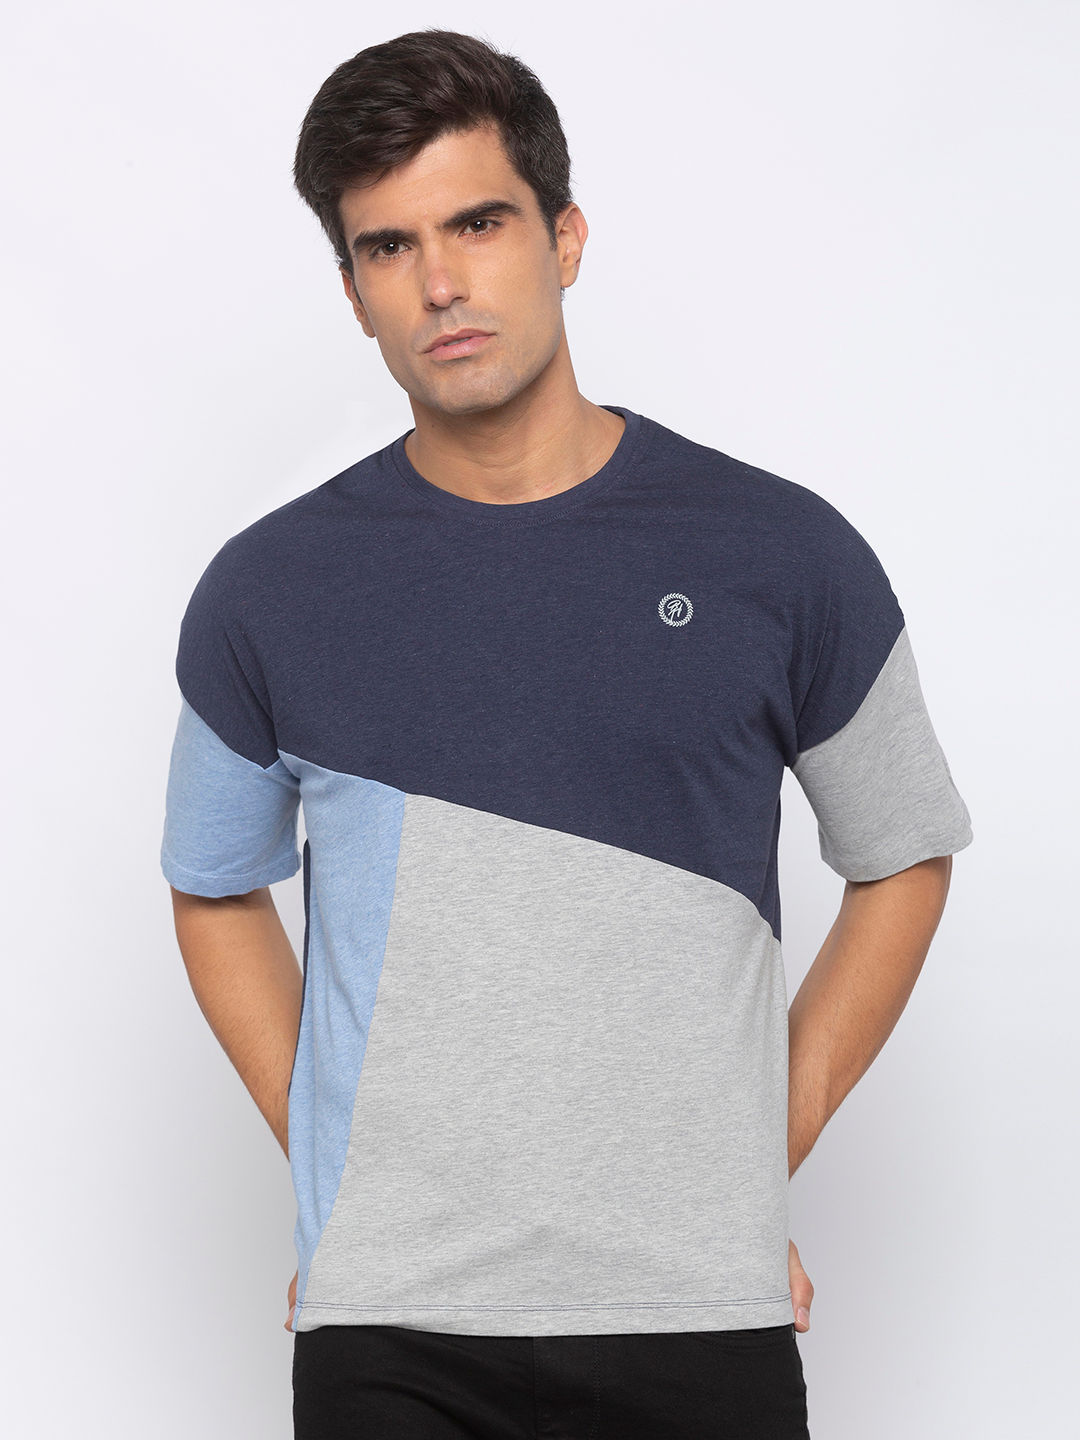 Mens short sleeve crew neck with HD print